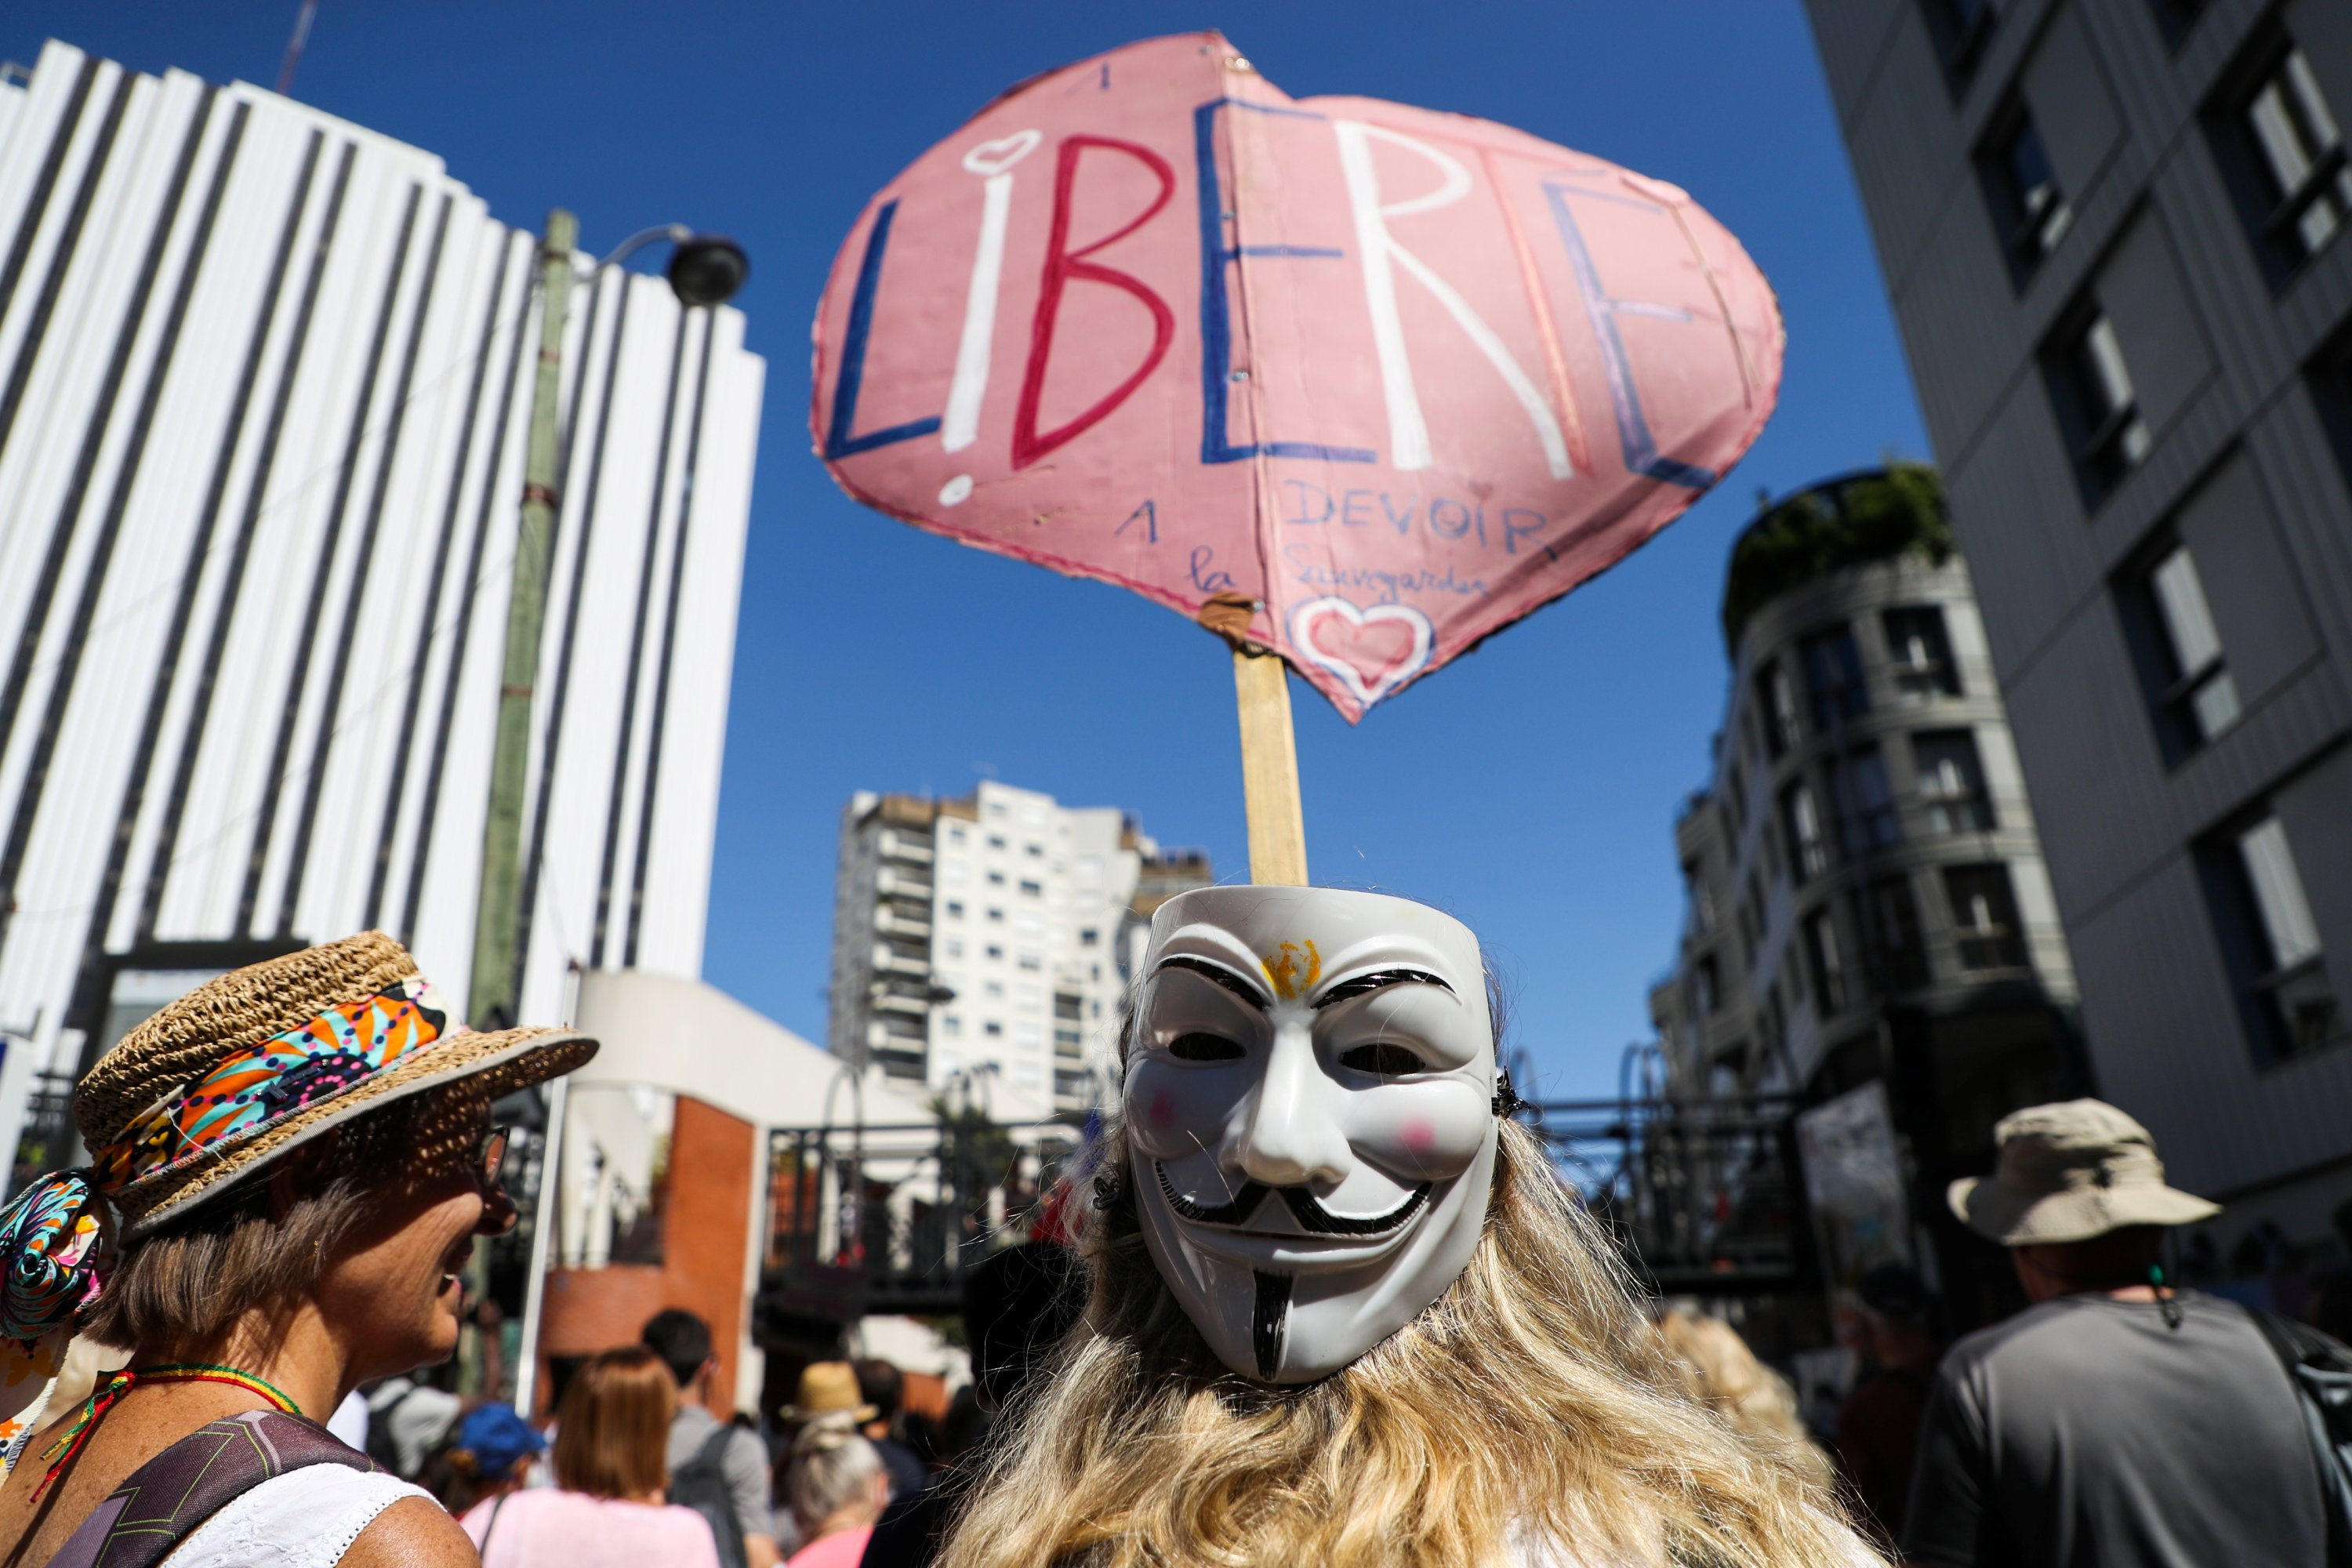 A protester with an anonymous mask holds a placard reading 'Liberty' during a demonstration called by the French nationalist party 'Les Patriotes' (The Patriots) against France's restrictions, including a compulsory health pass, to fight the coronavirus outbreak, in Paris, France, Aug. 14, 2021. (Reuters Photo)